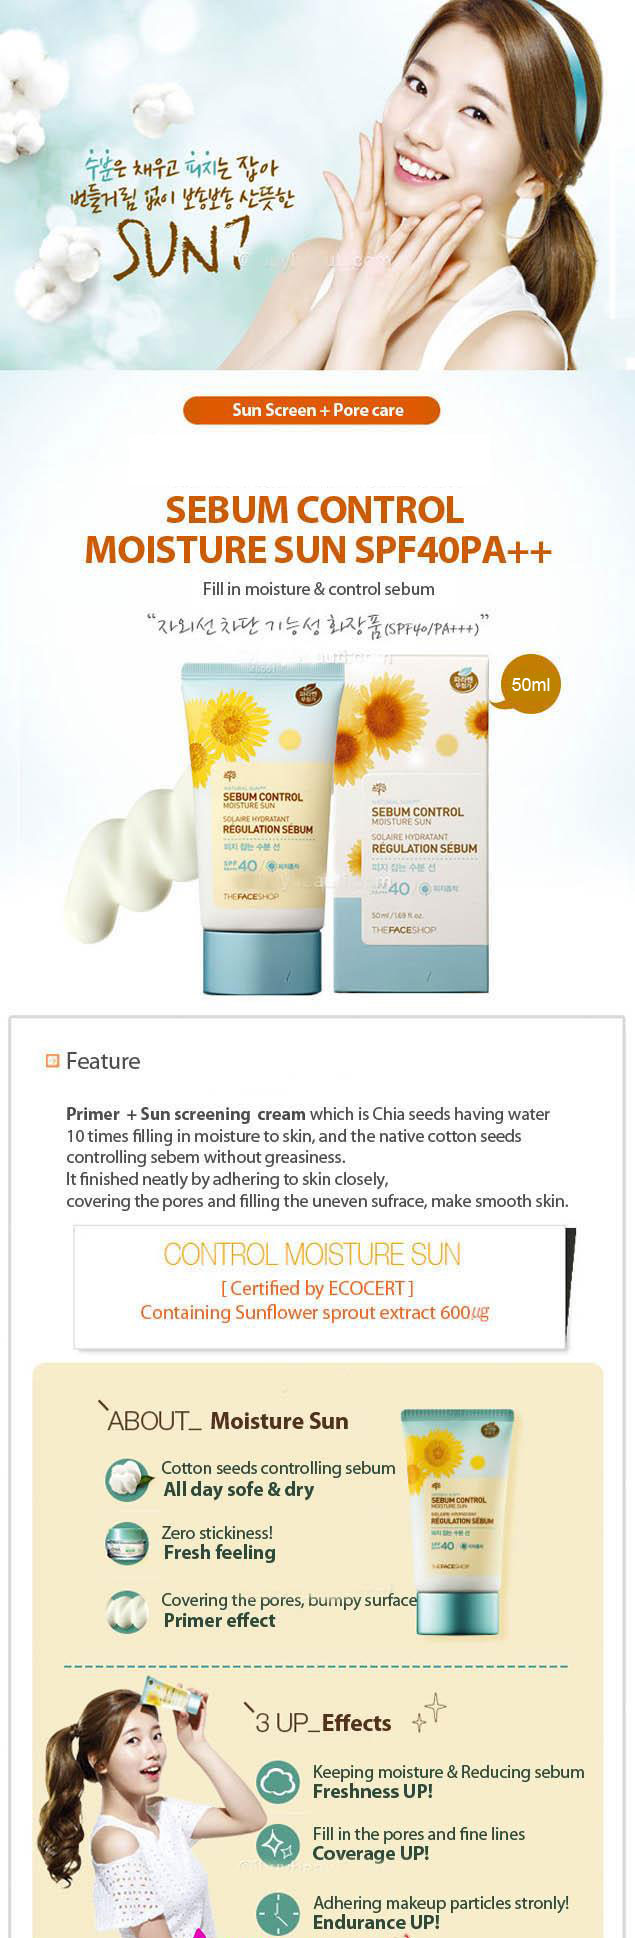 kem chống nắng the face shop spf 40pa